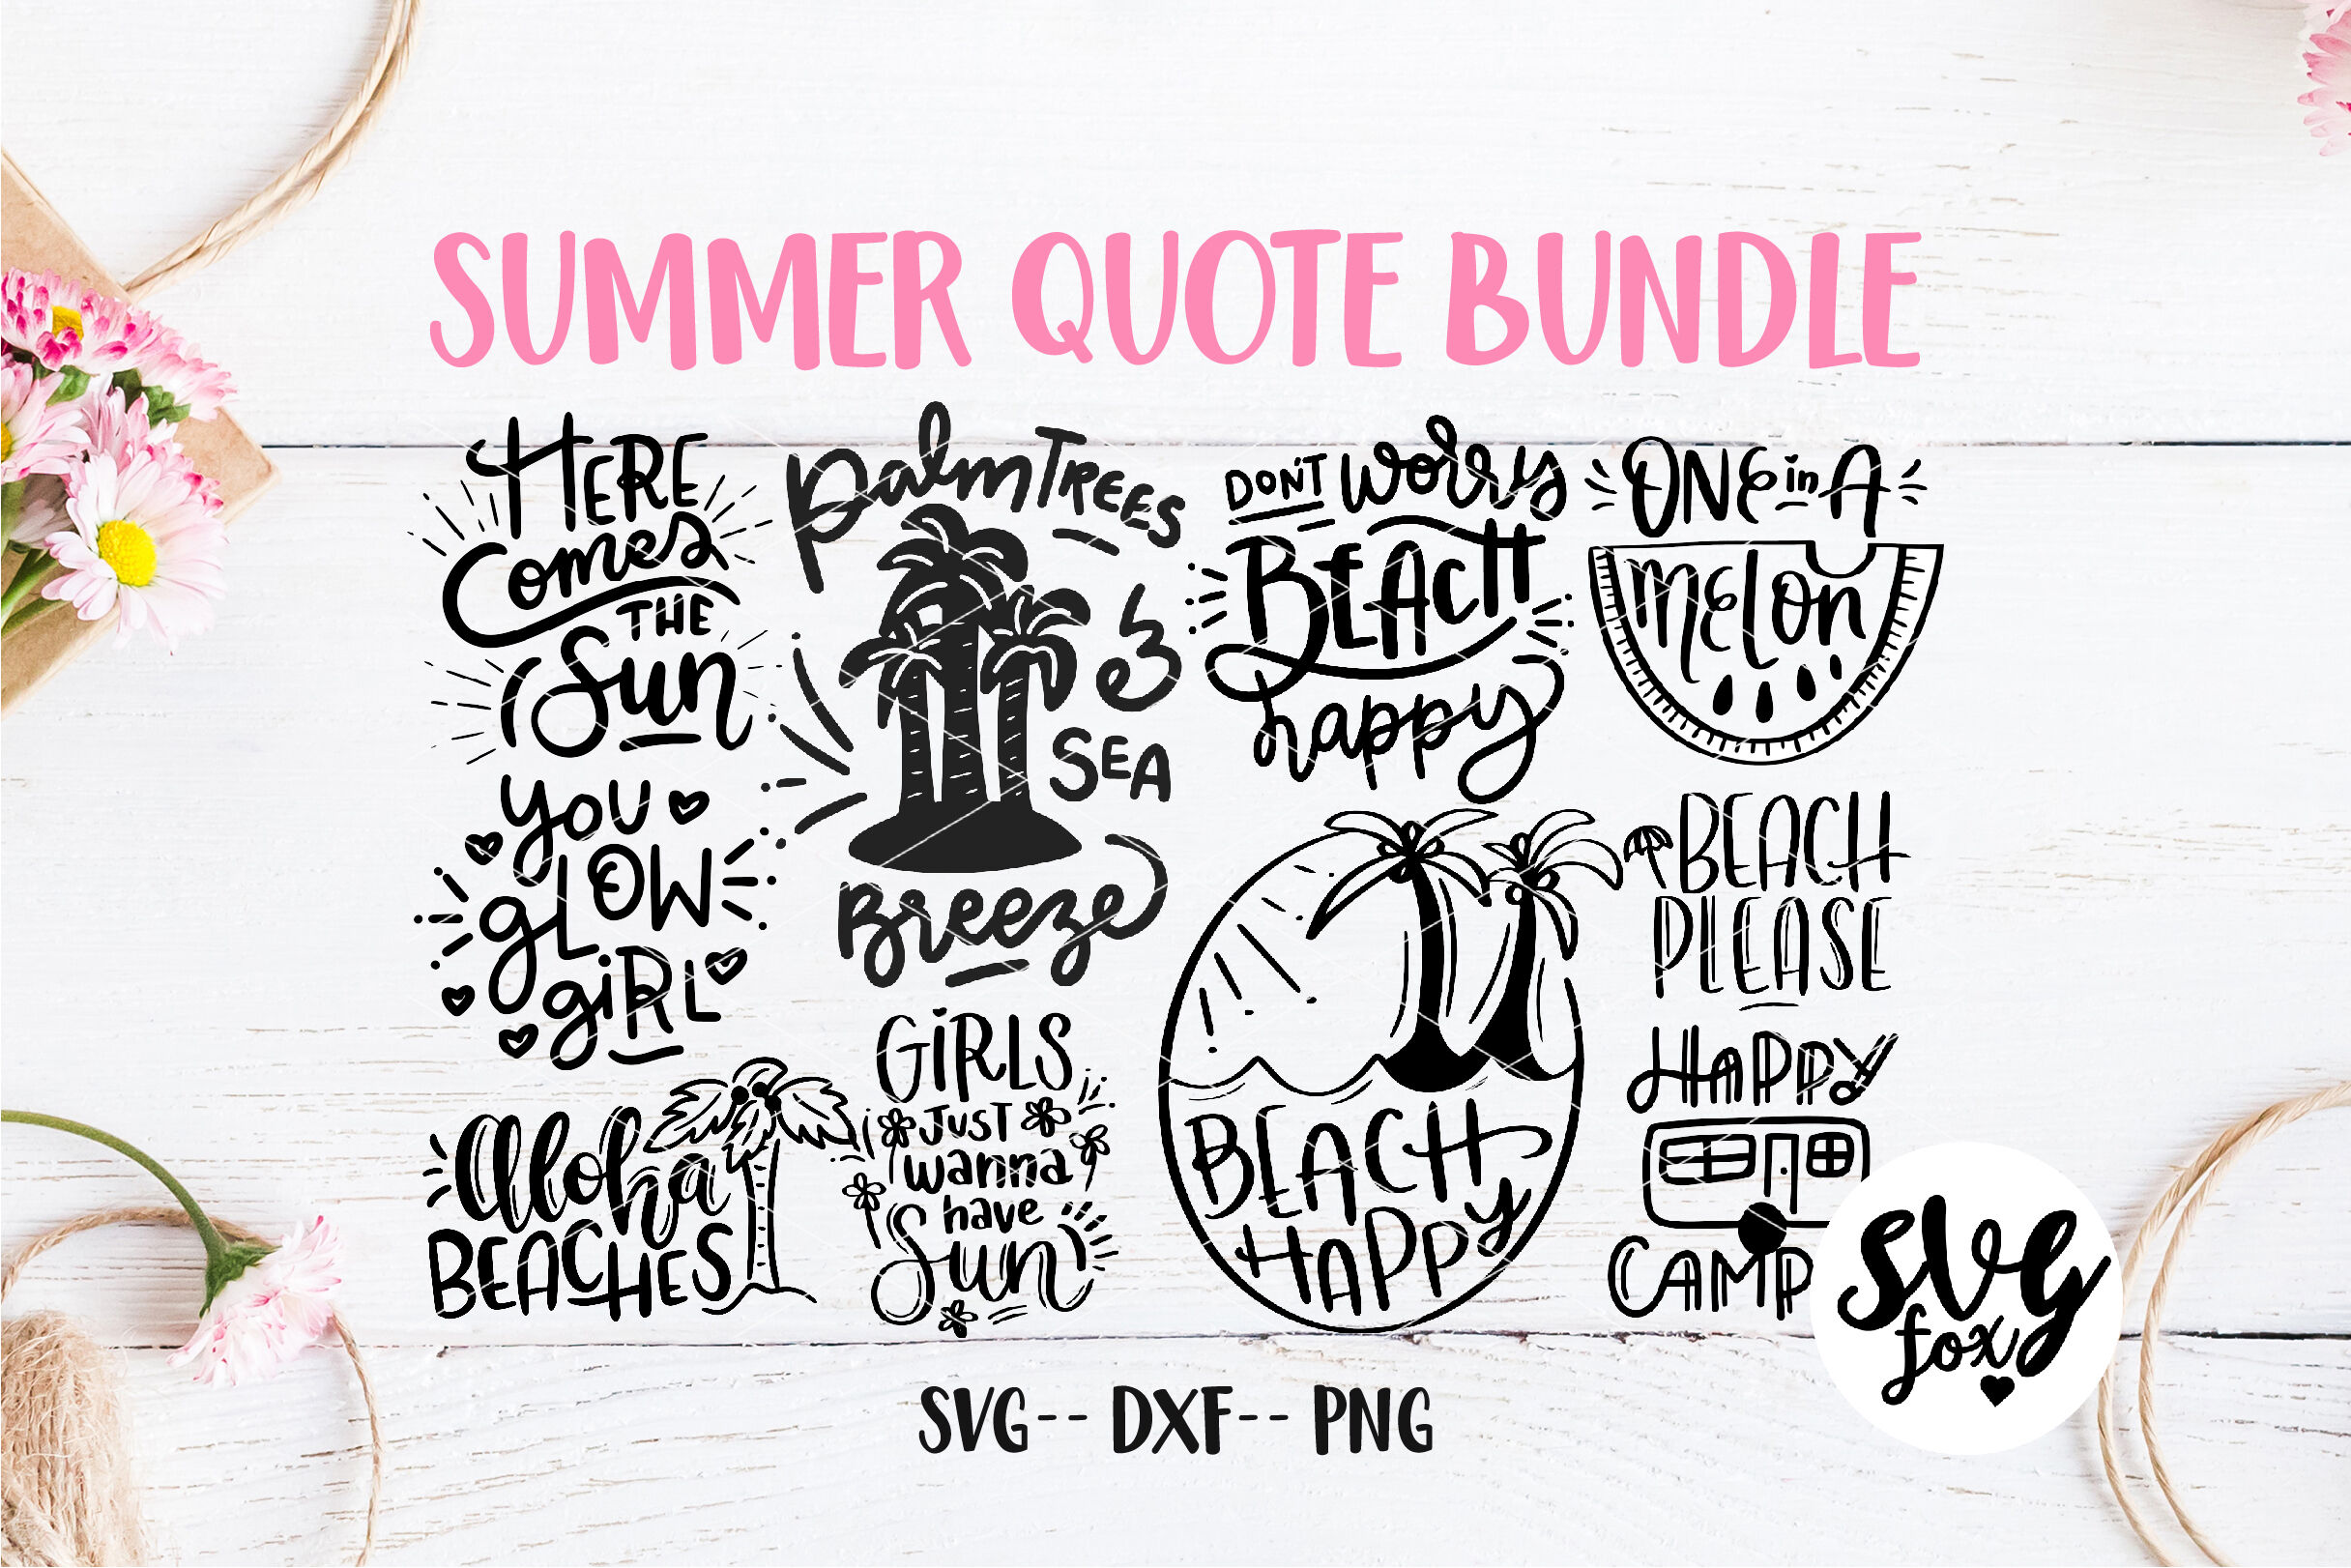 Summer Hand Lettered Quote Svg Dxf Png Bundle By Svgfox